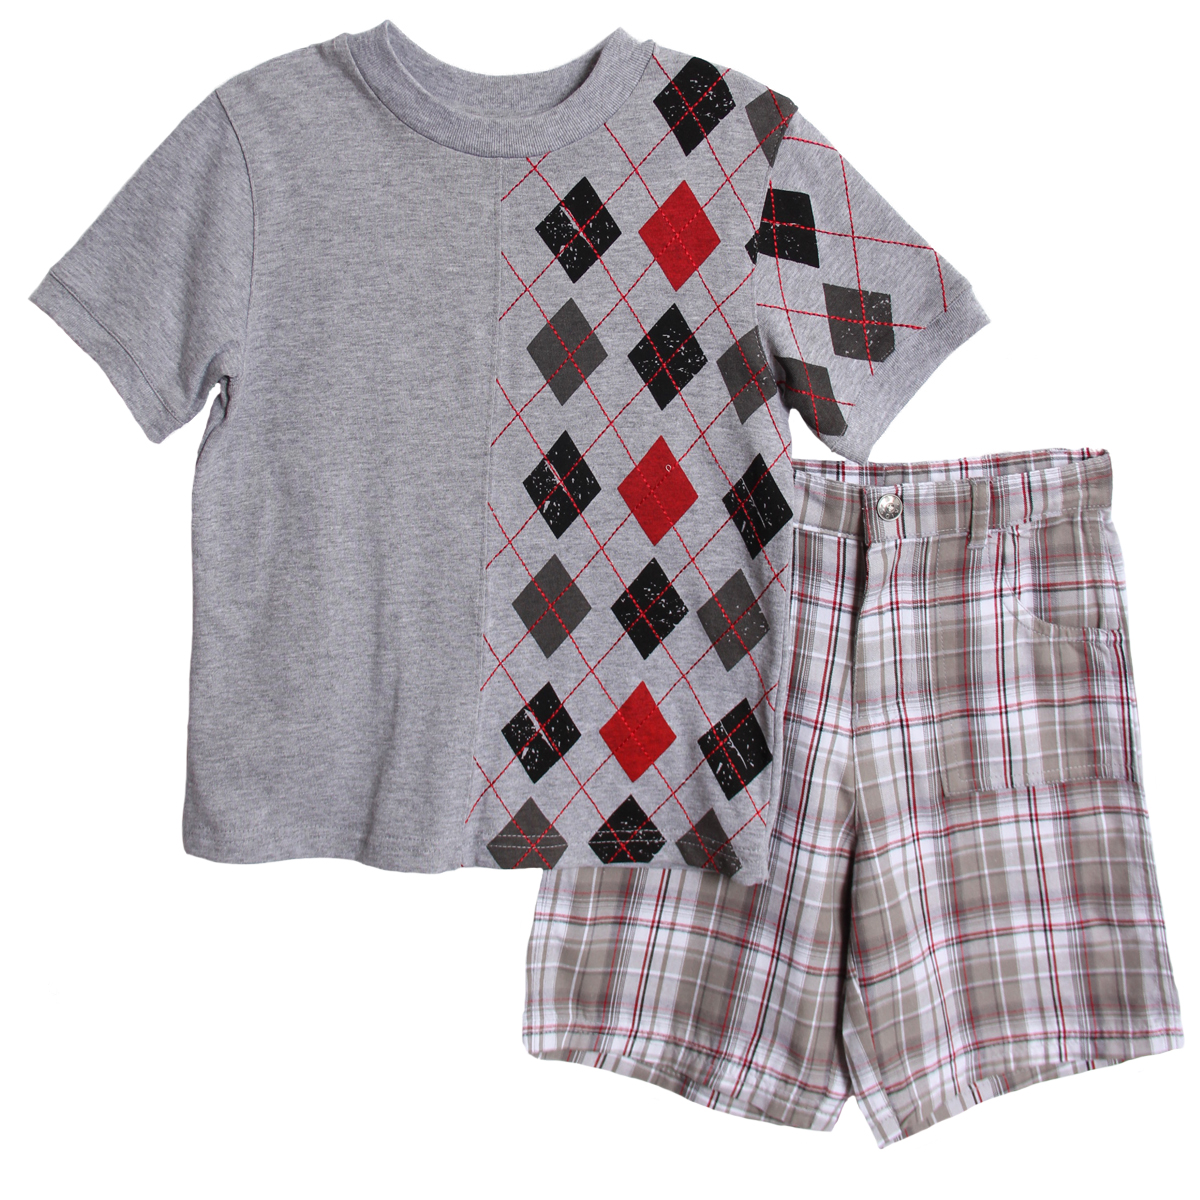 B. T. Kids Boys 2 Piece Gray Red Argyle T-shirt Plaid Shorts Summer Set at Sears.com